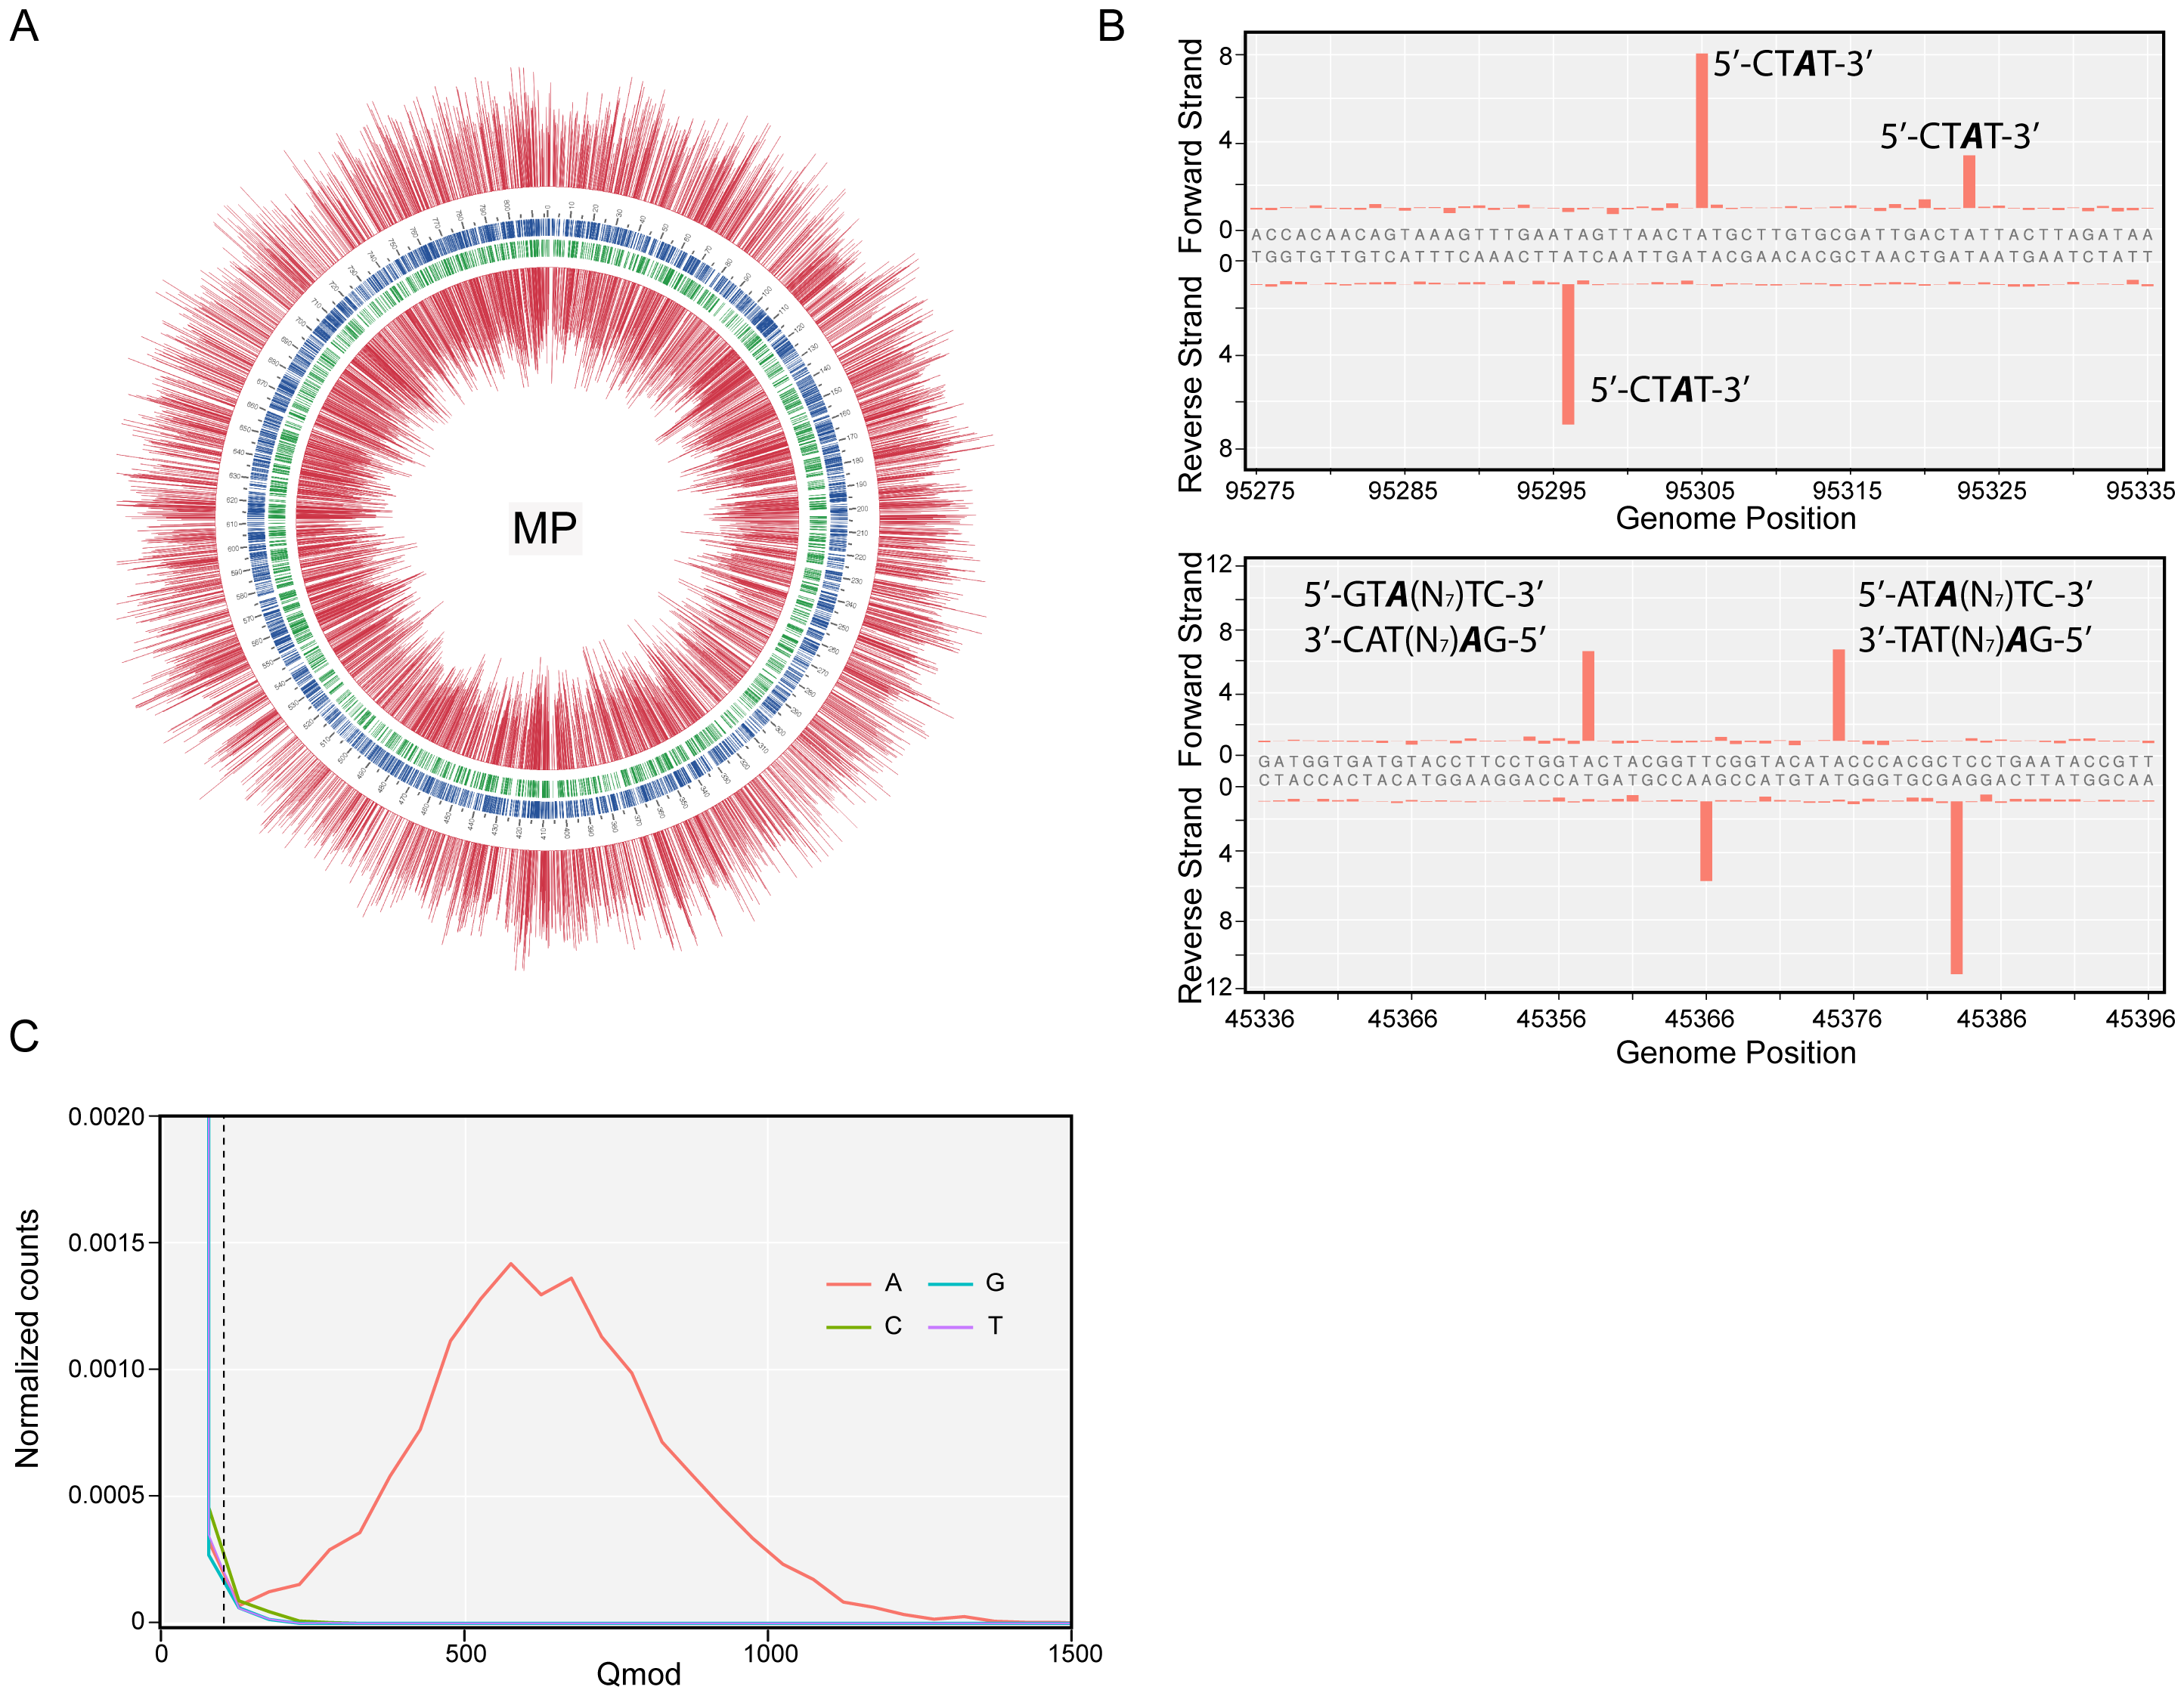 Methylome determination of <i>M. pneumoniae</i> by SMRT sequencing.